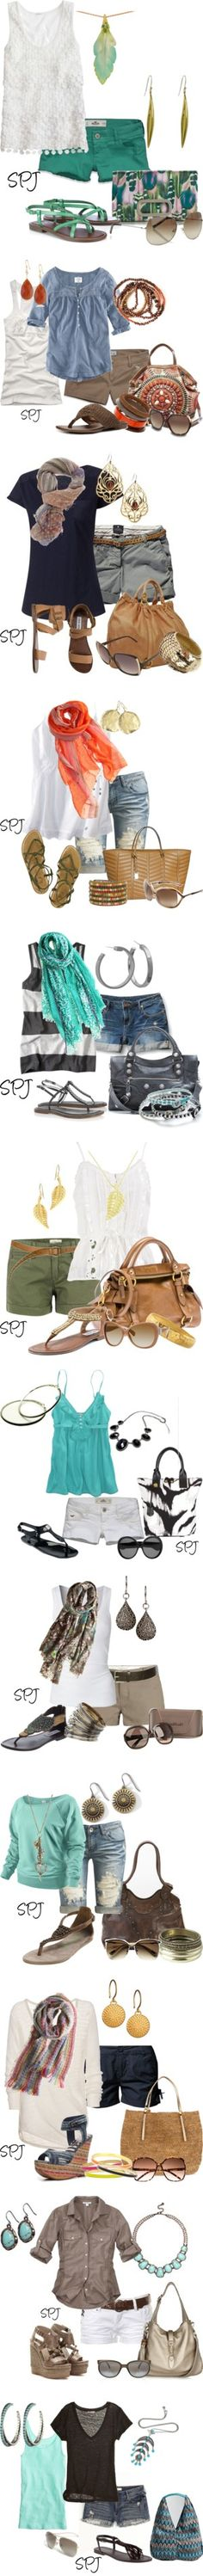 Summer outfits. Soo cute if I wore shorts